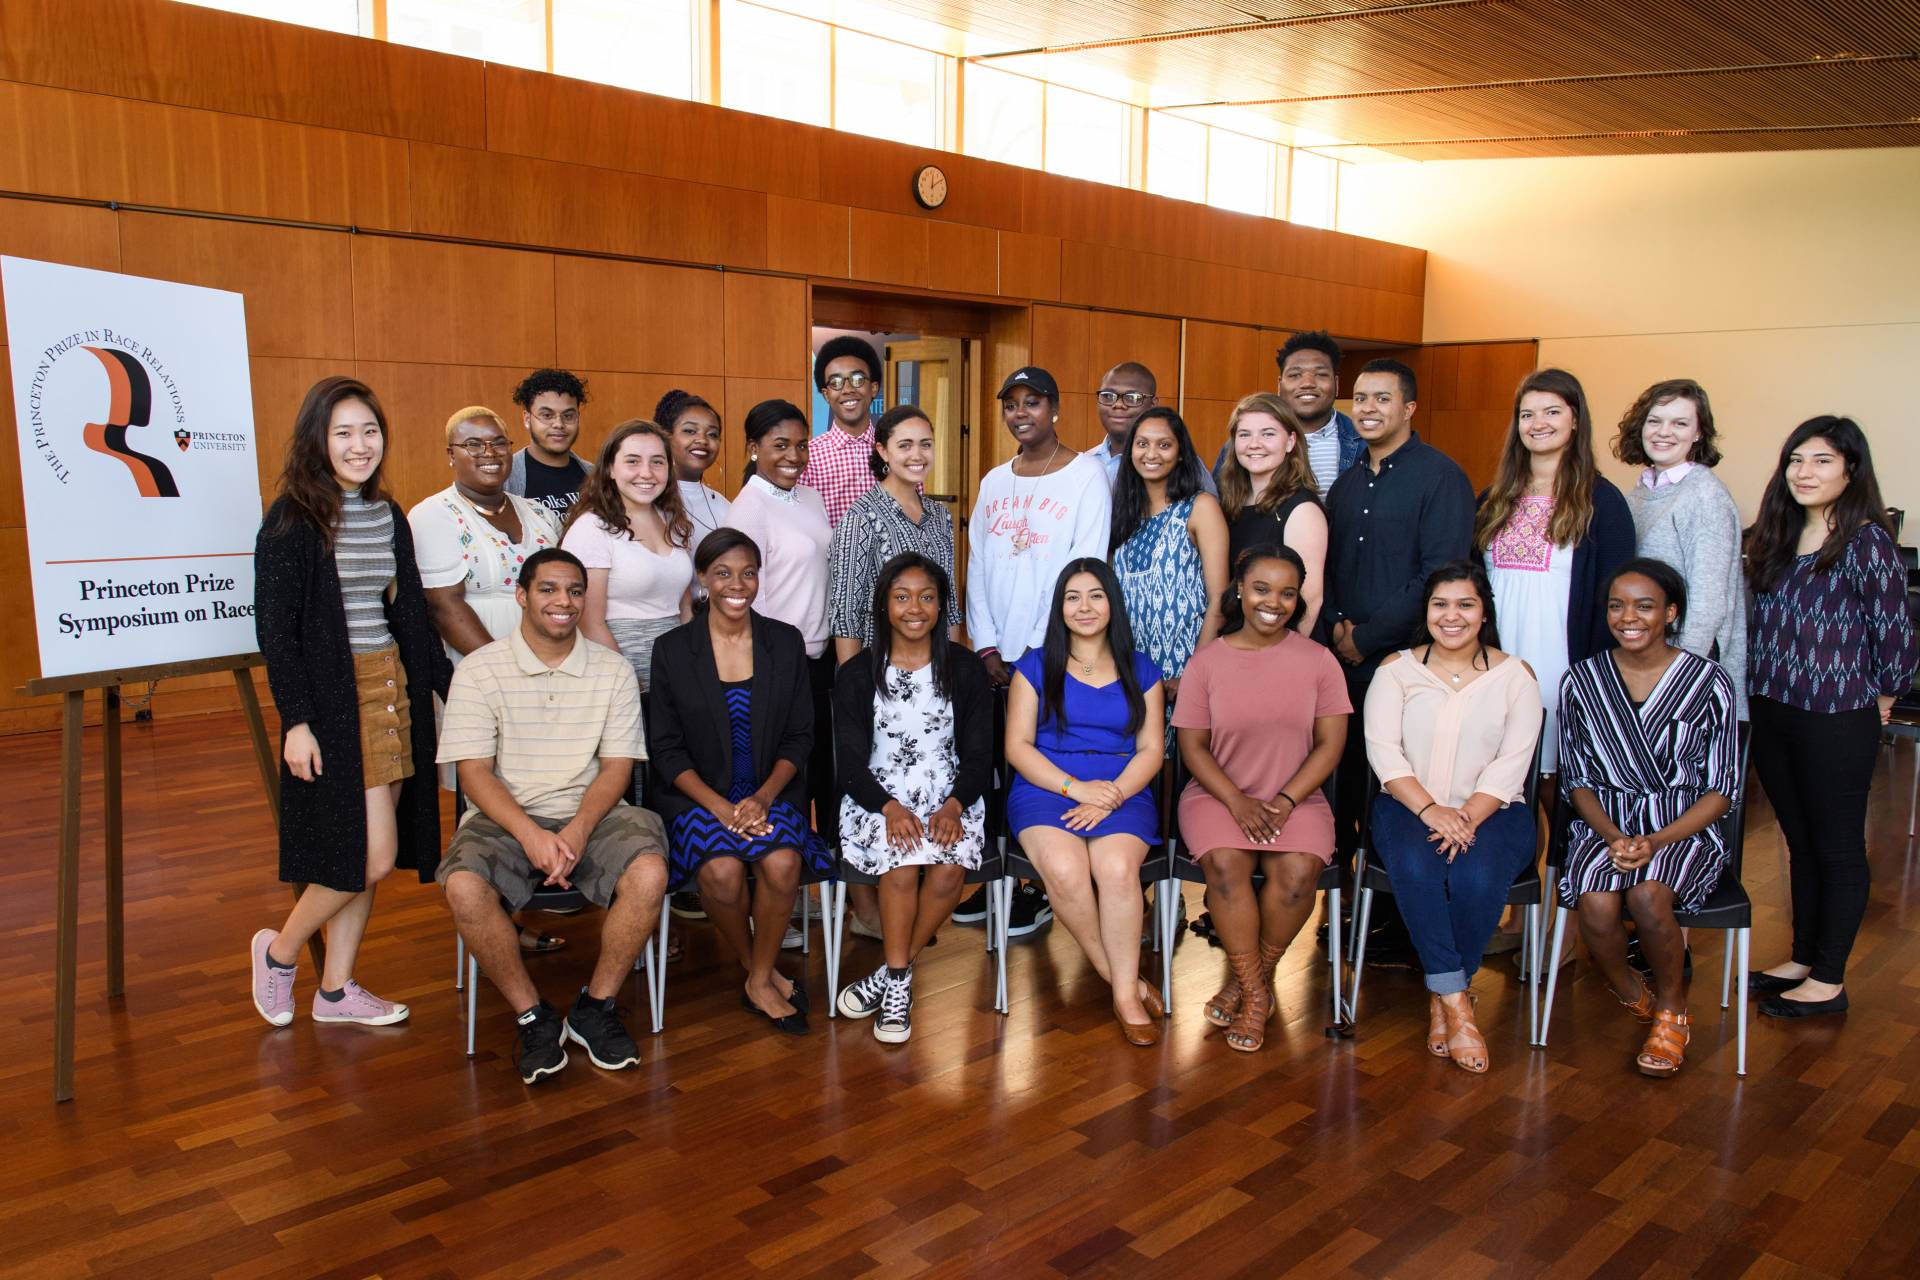 Princeton Prize in Race Relations students